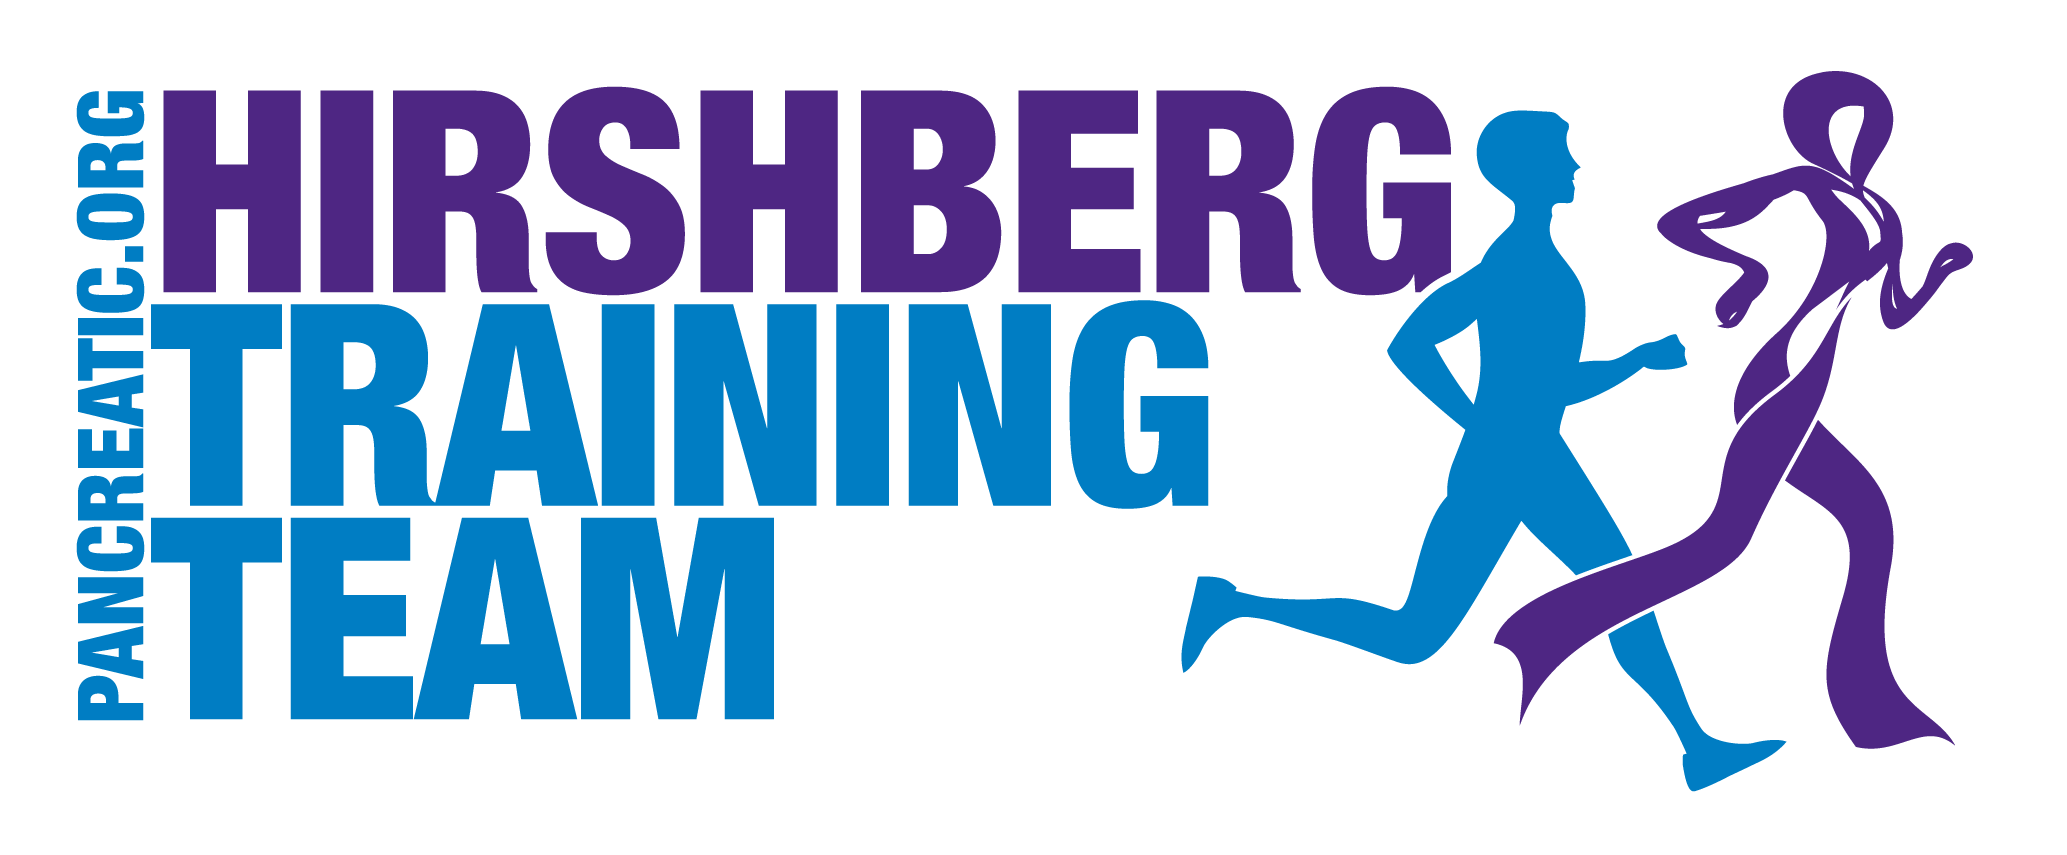 Hirshberg Training Team